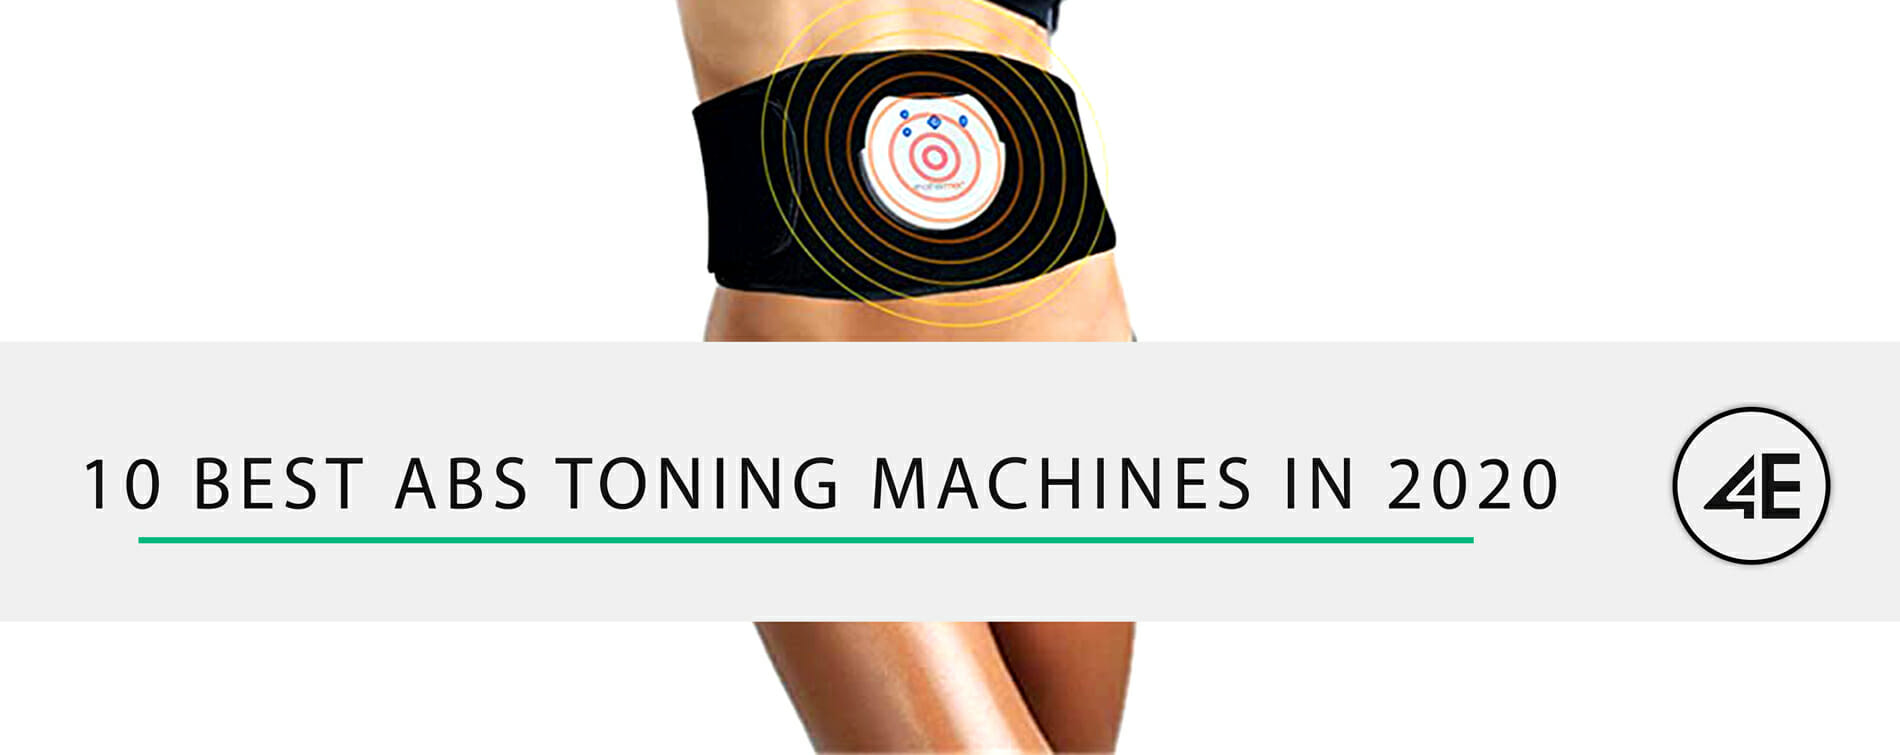 10 Best Abs Toning Machines in 2021